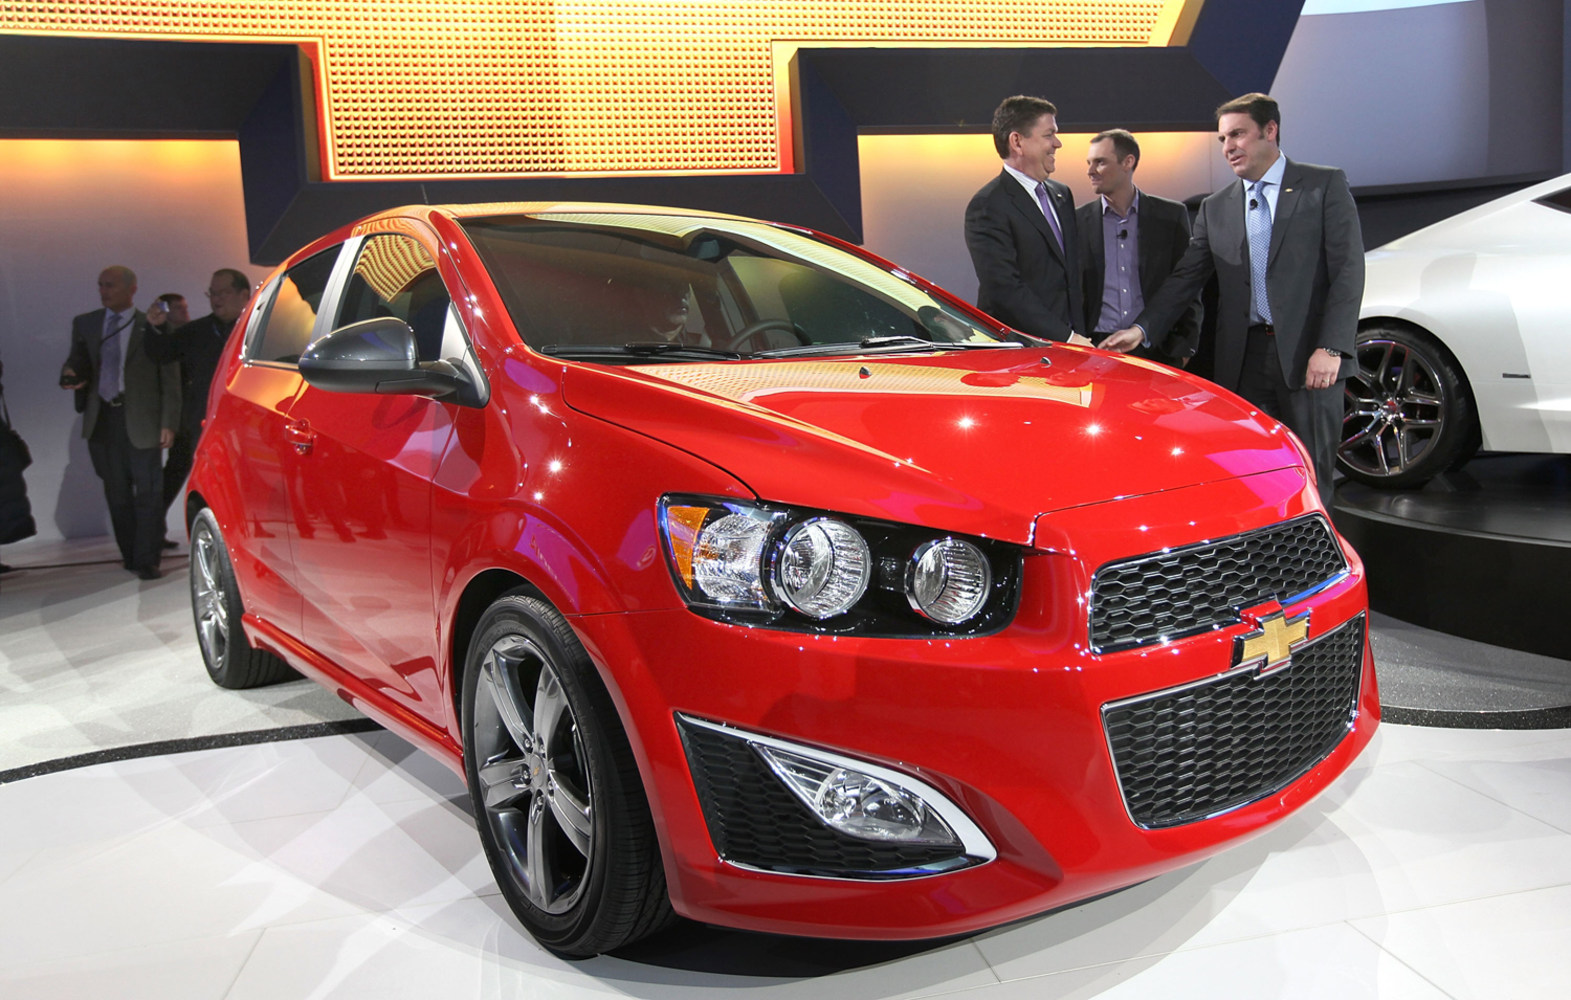 Six Small Car Models Fare Badly In Crash Safety Test Nbc News